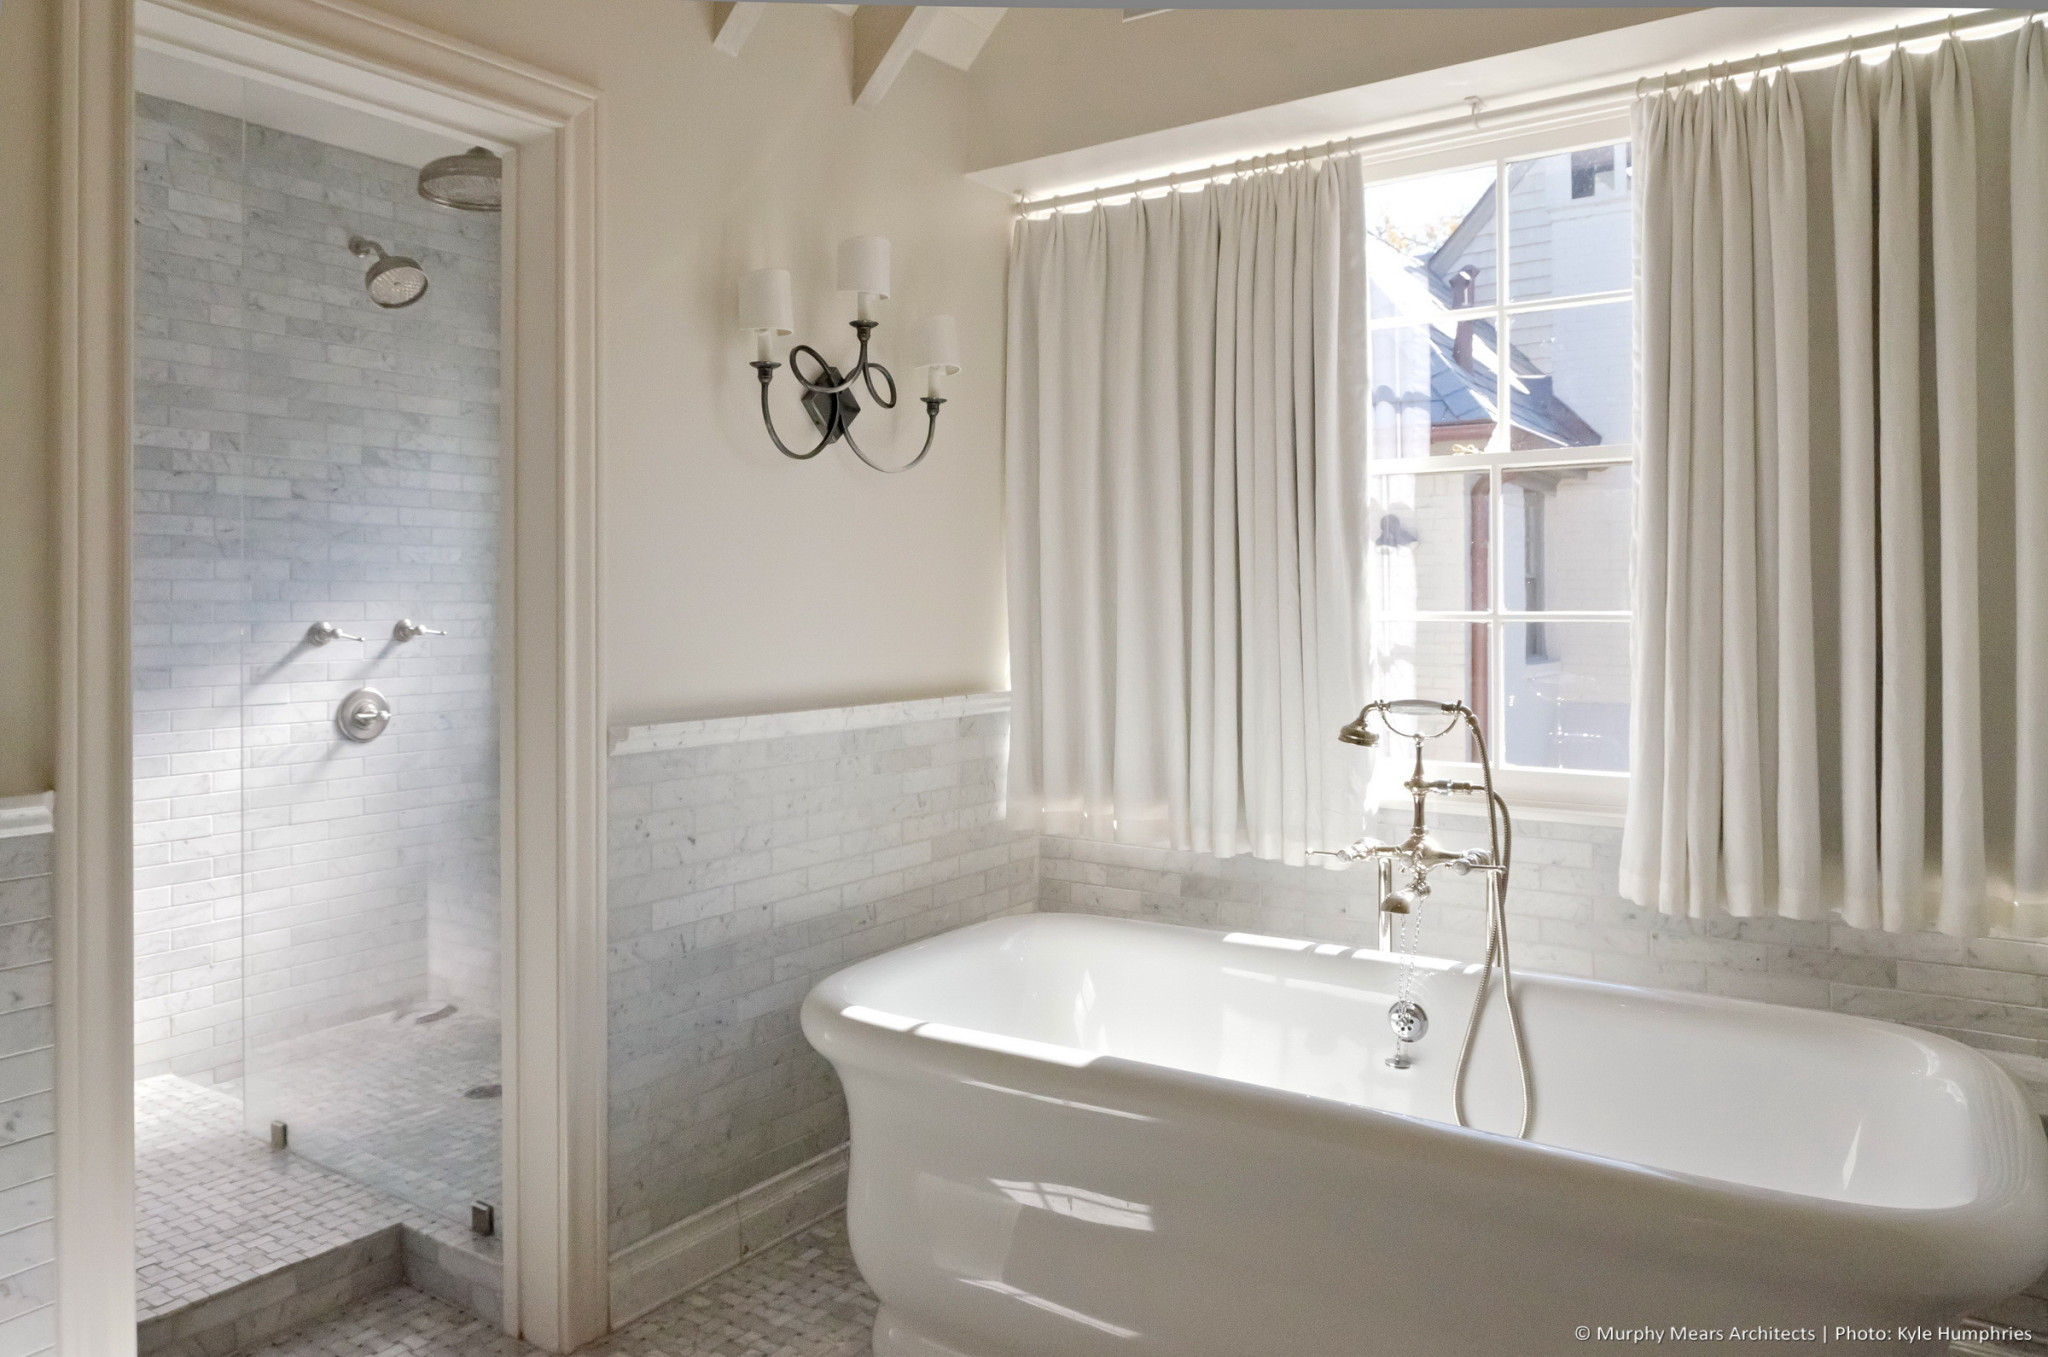 Pemberton Residence - New master bath with free-standing tub located beneath a south facing window.